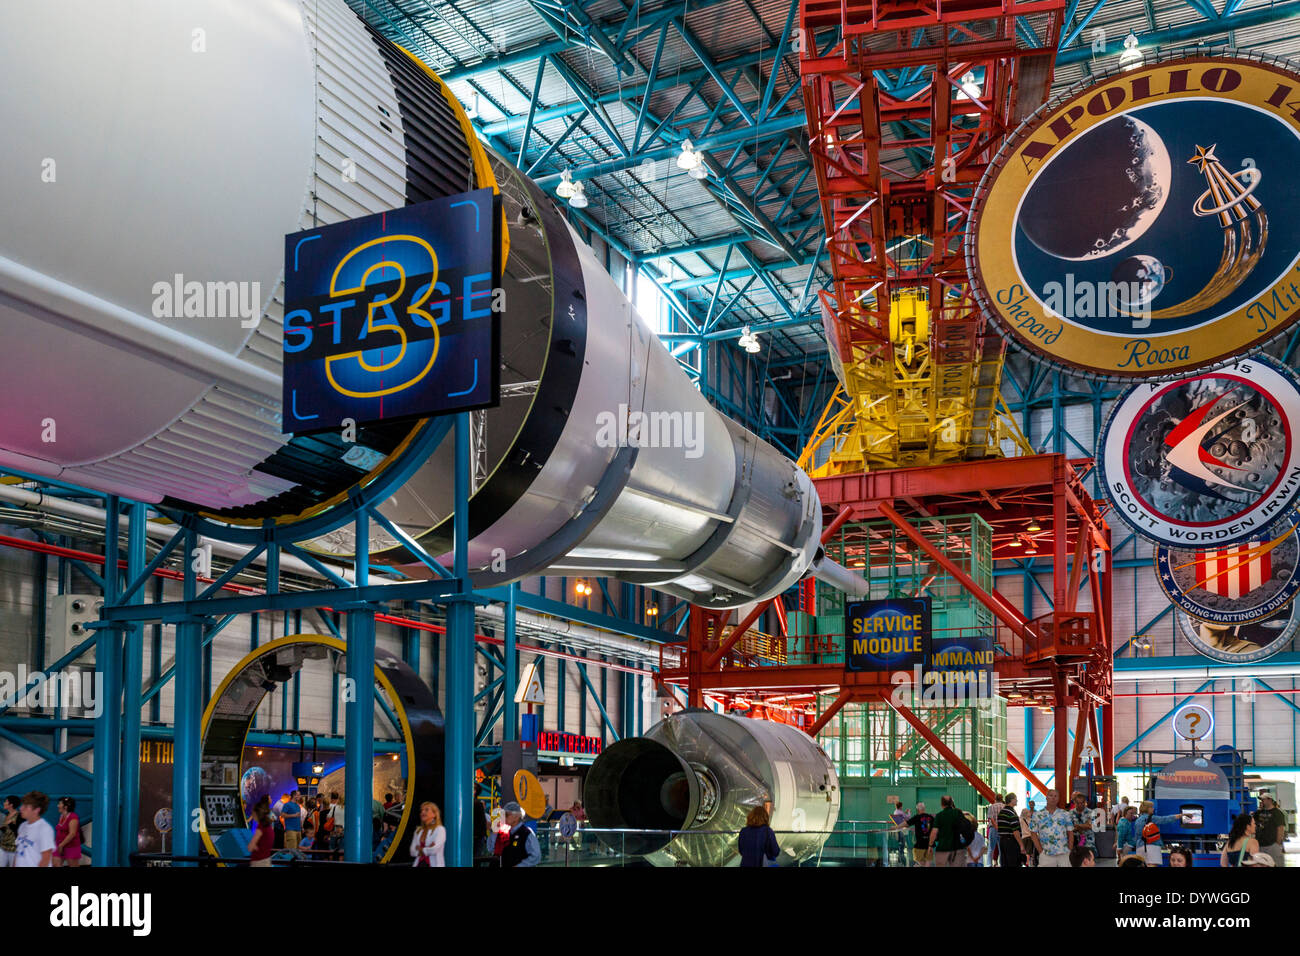 apollo 5 kennedy space center - photo #40